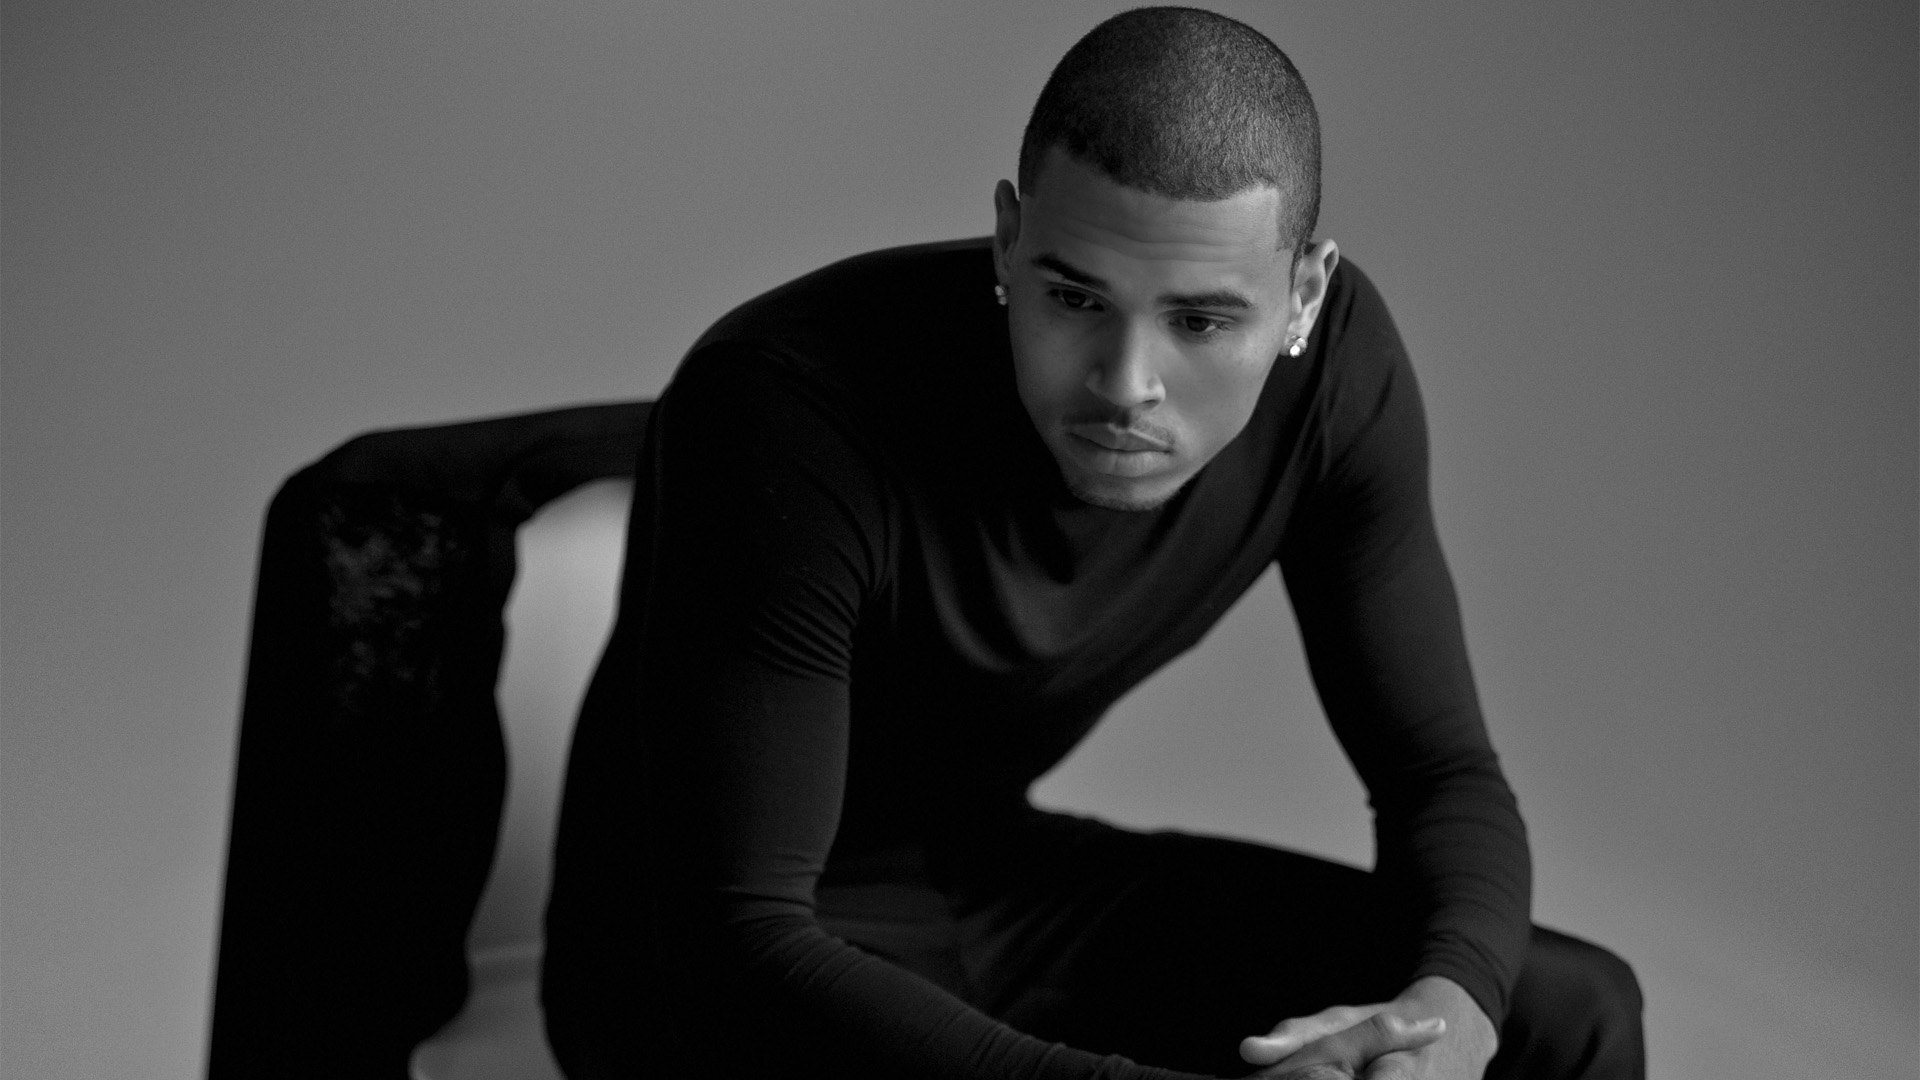 Chris Brown Wallpapers Hd Full Hd Pictures